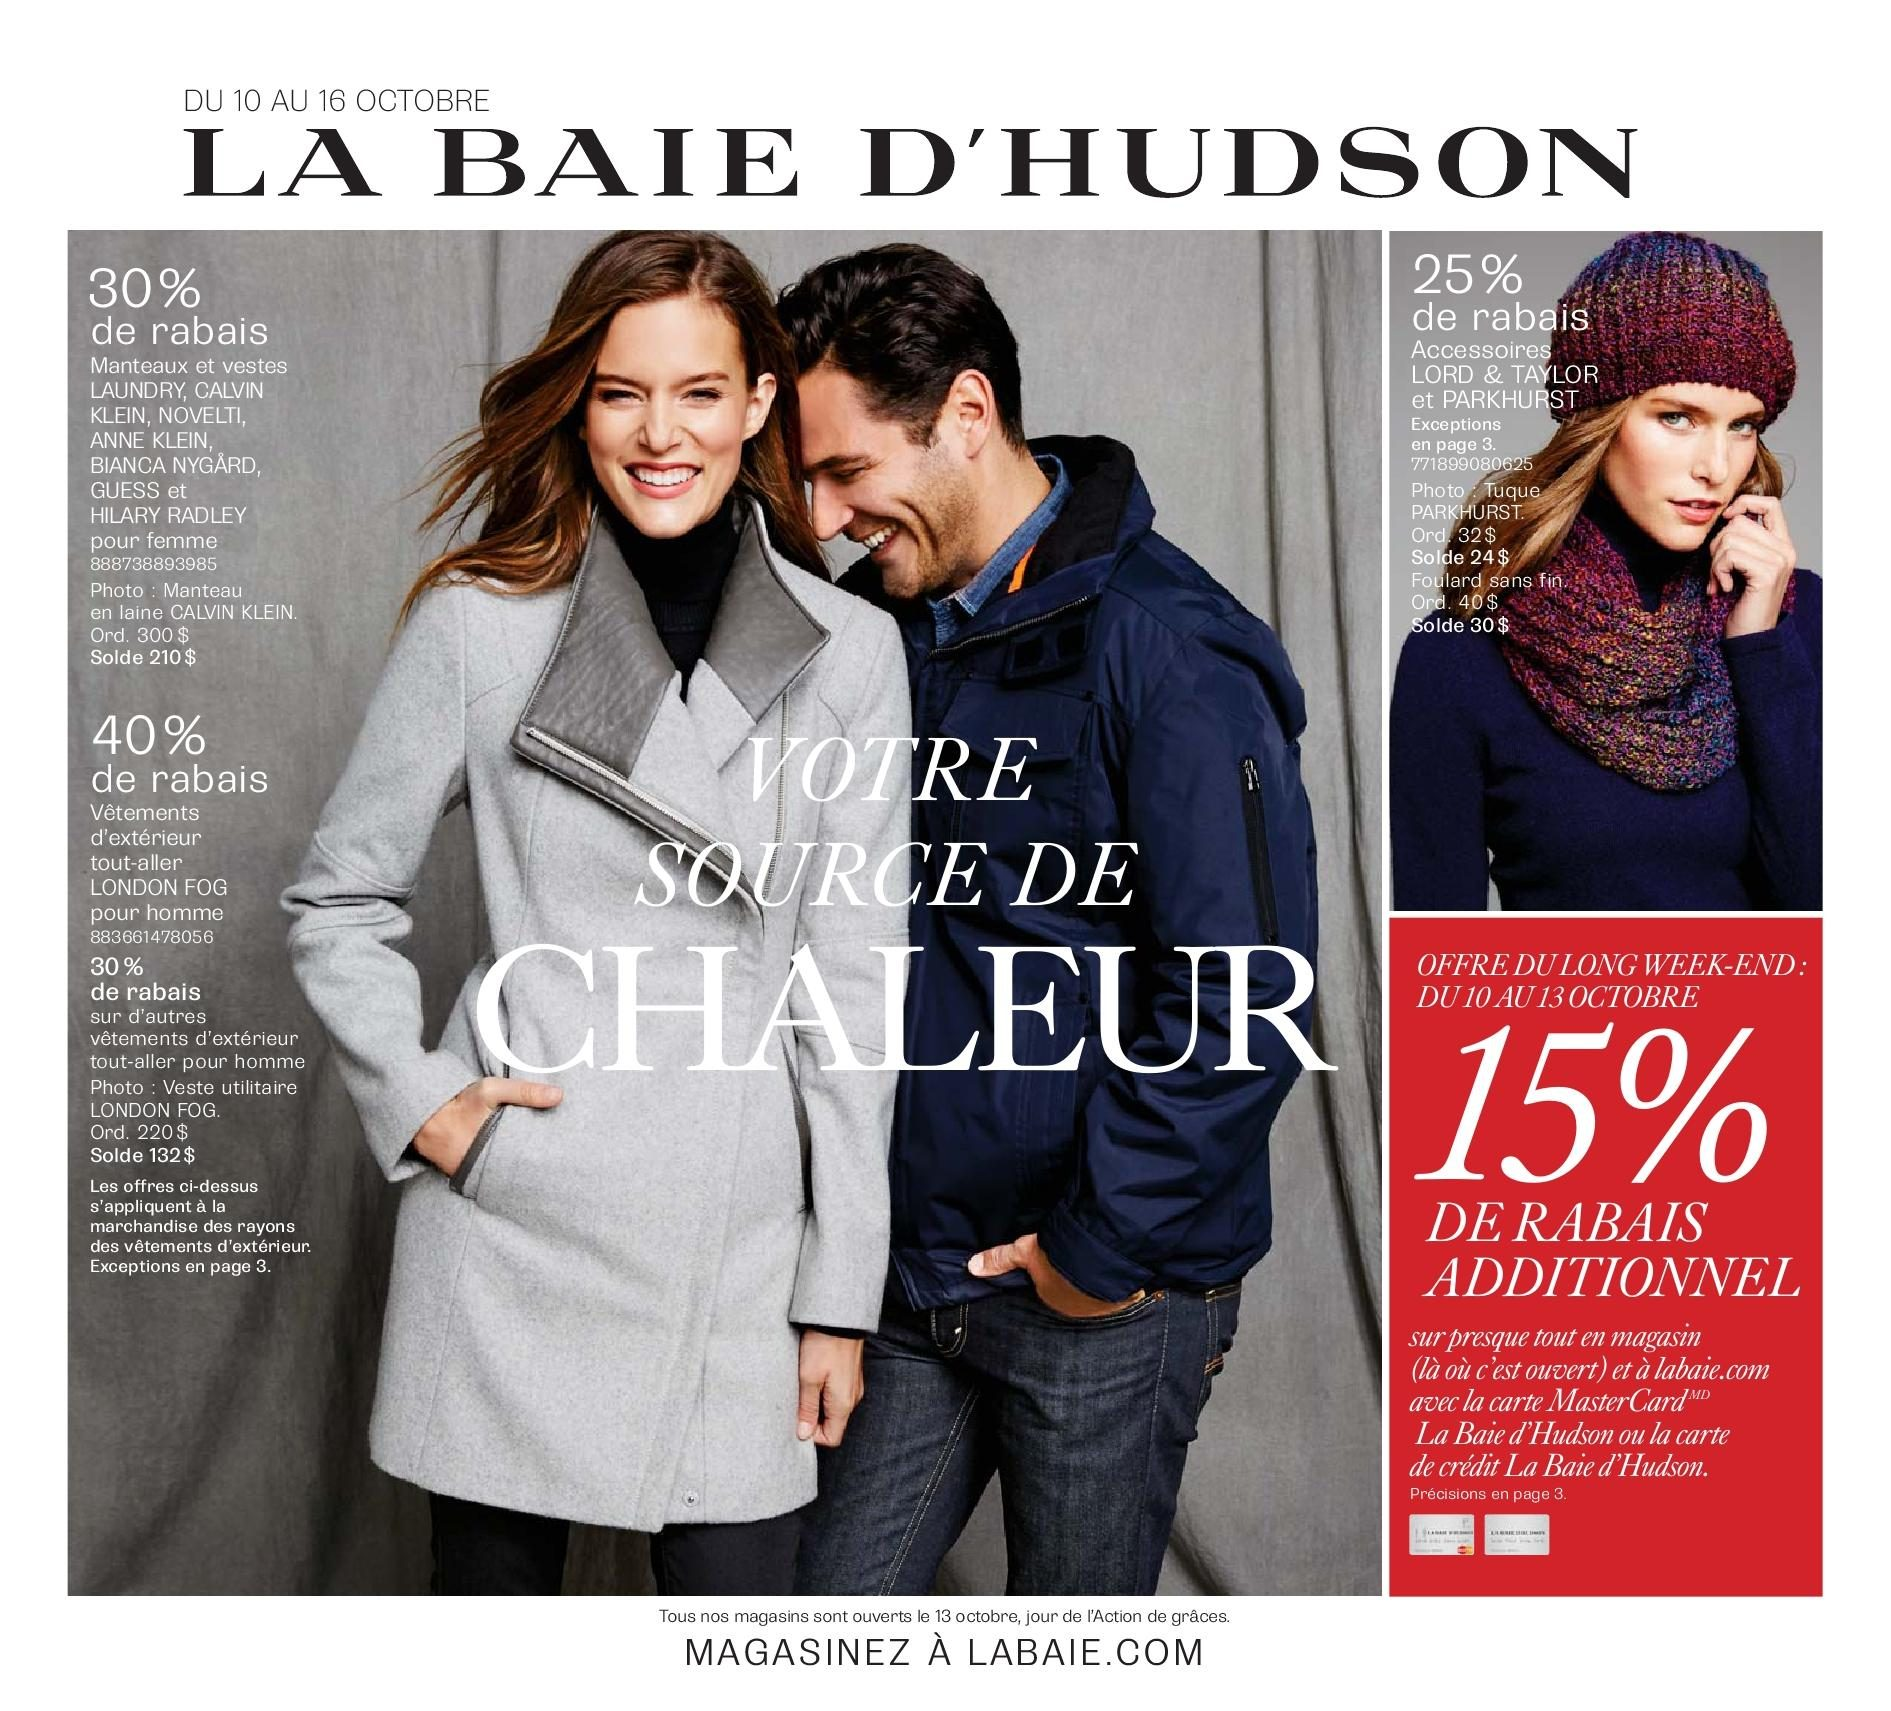 The Bay Weekly Flyer - Votre Soure de Chaleur (FR) - Oct 10 – 16 -  RedFlagDeals.com ffab59e30d8